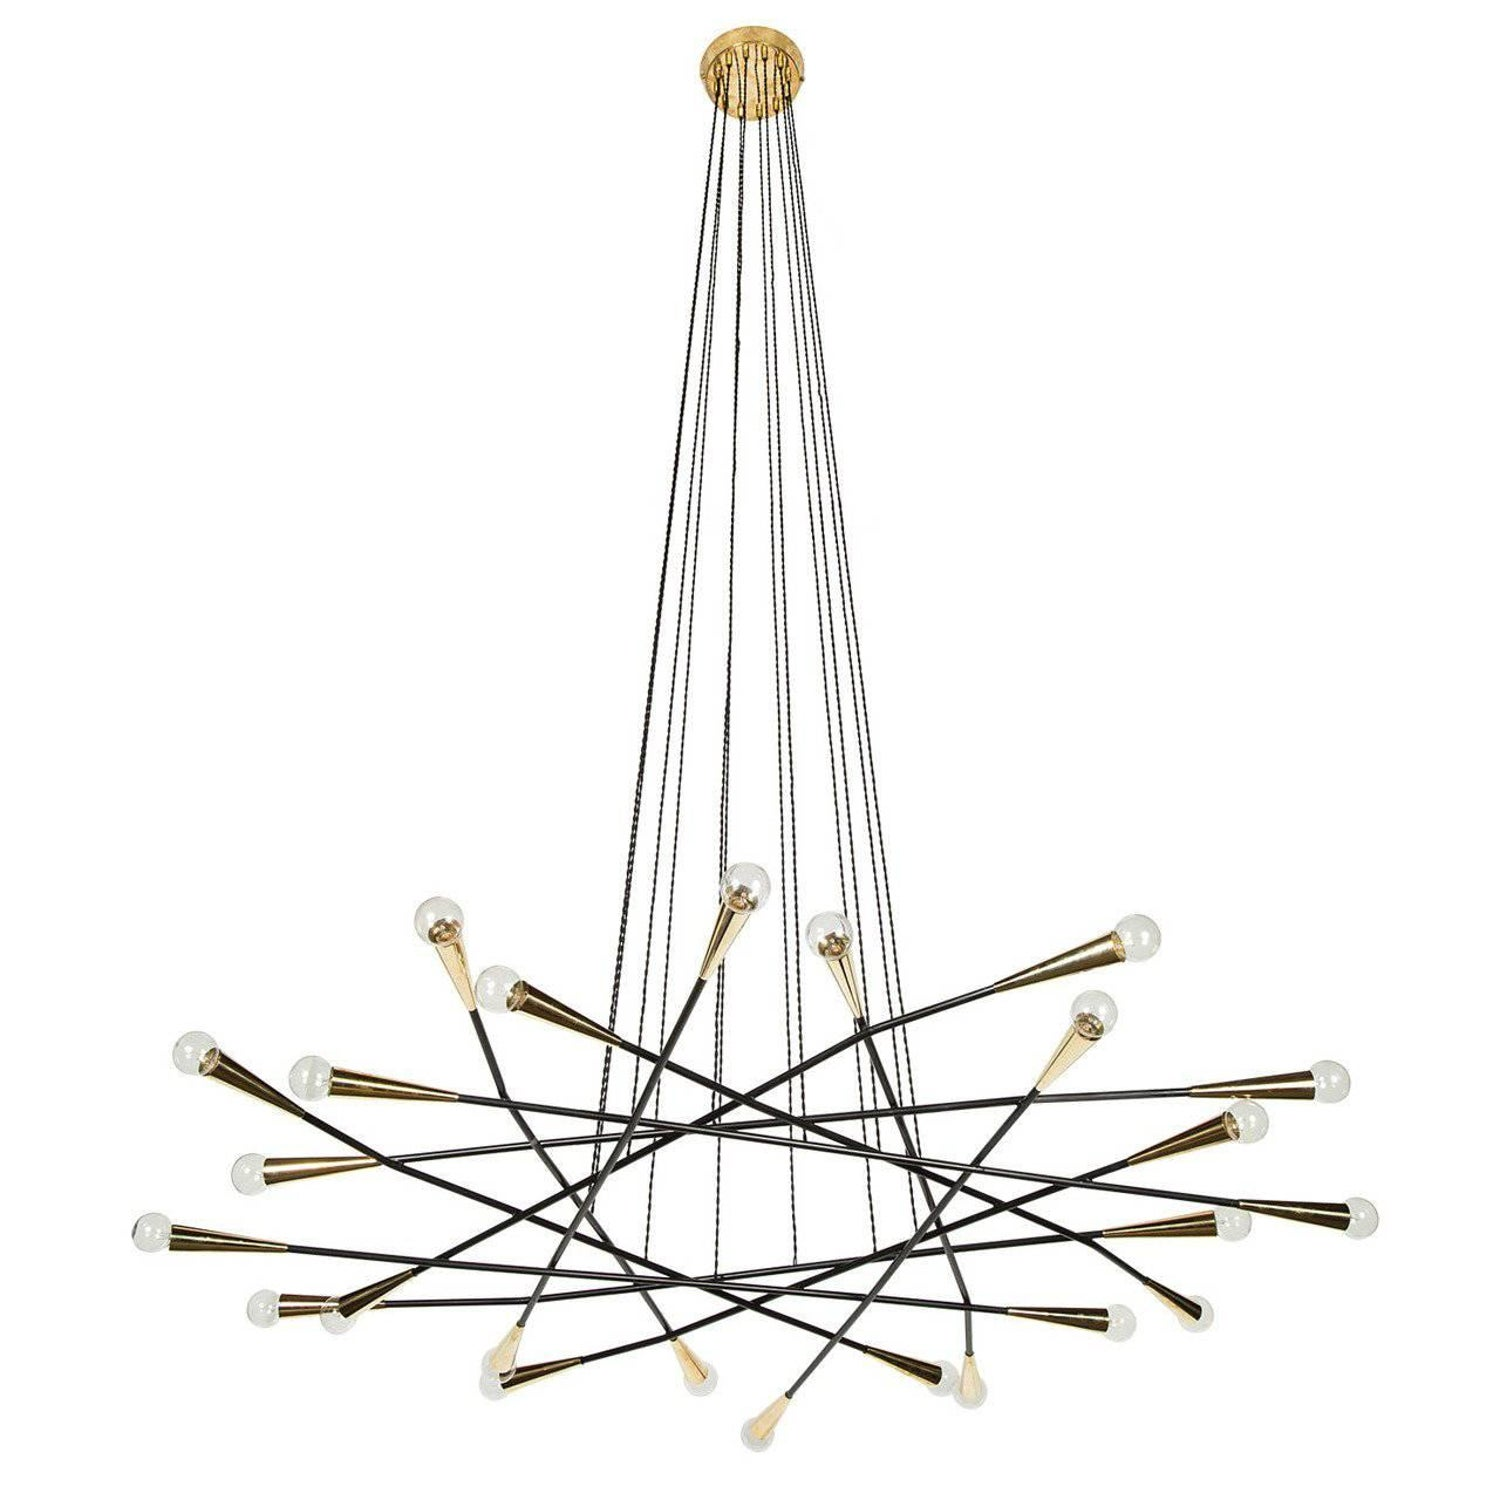 Rewire Custom Orb Chandelier For Sale at 1stdibs